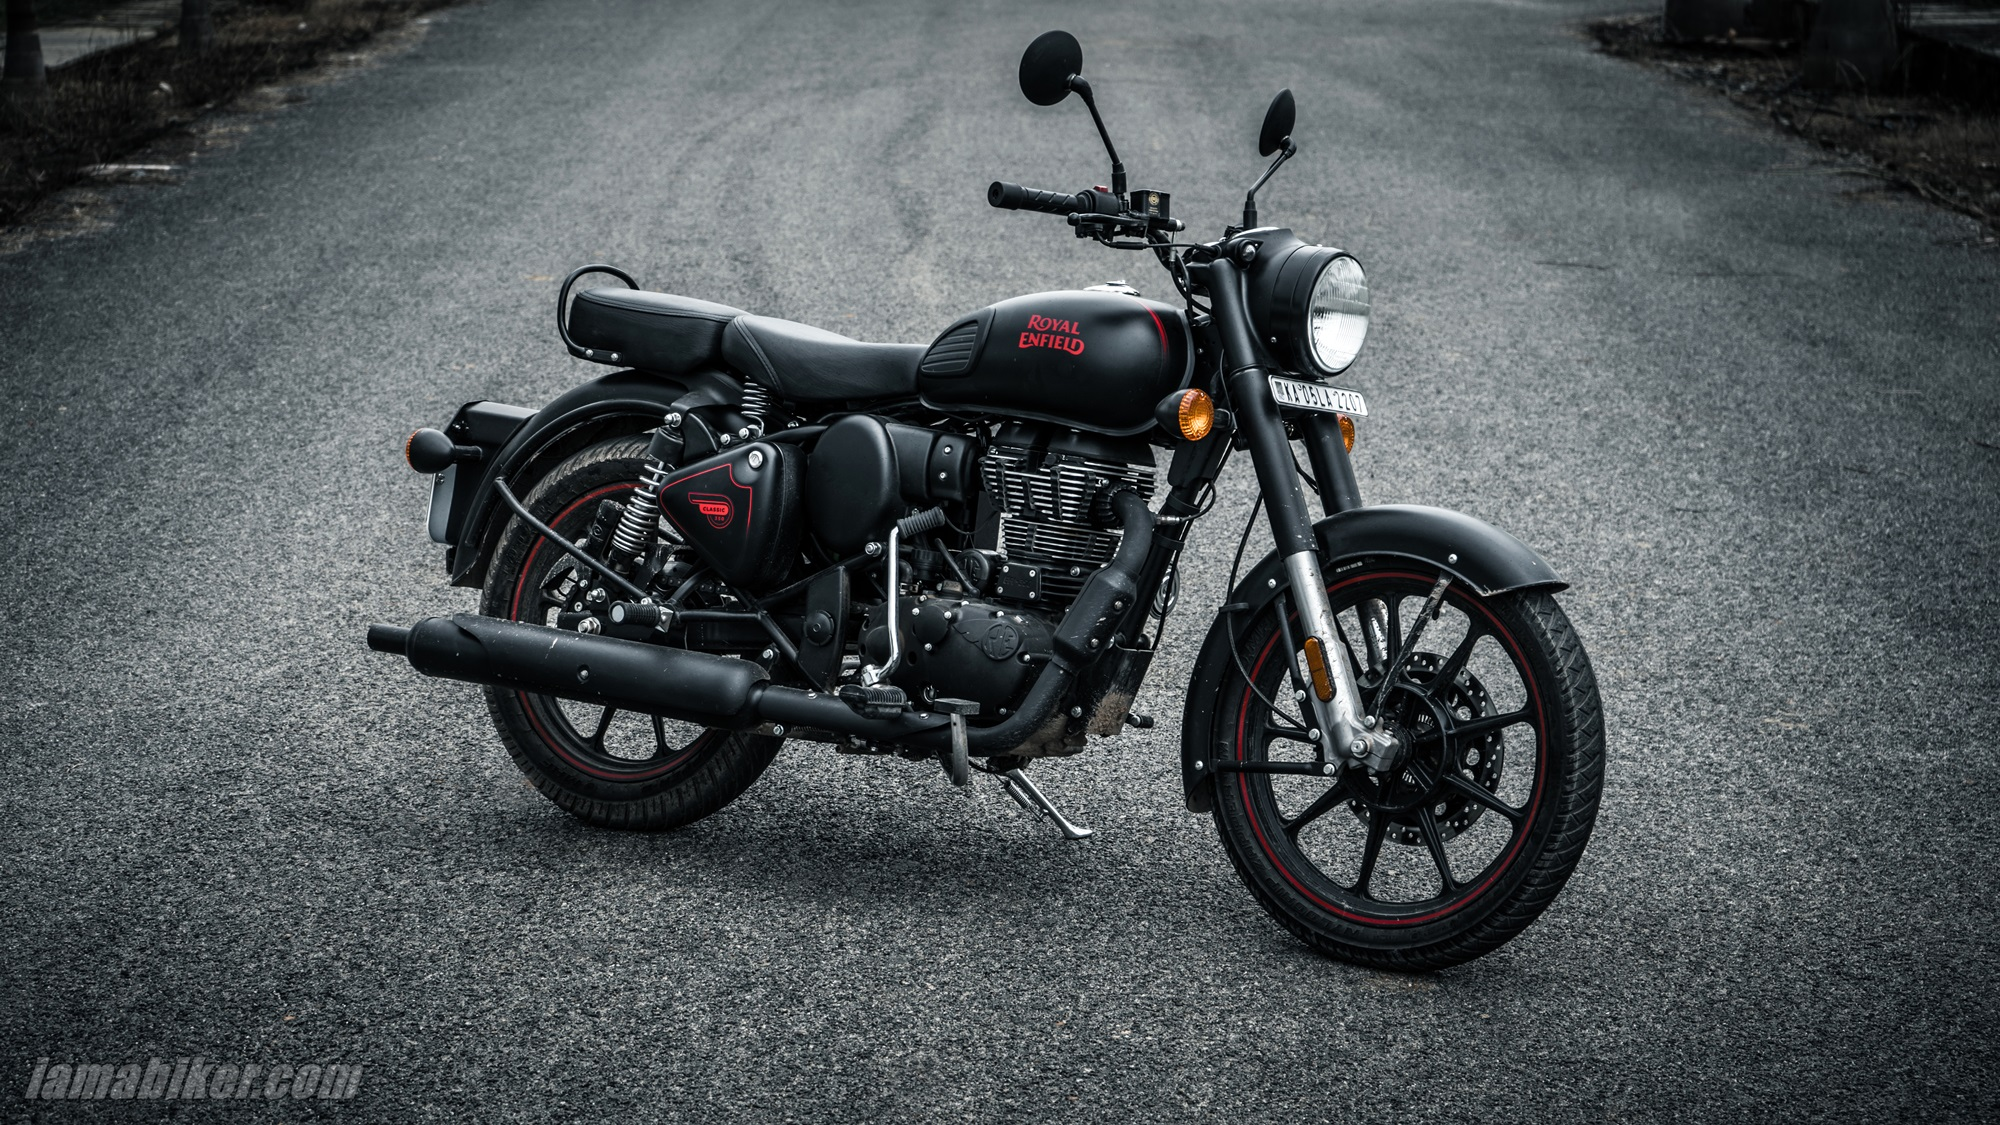 Royal Enfield Classic 350 Bs6 Stealth Black Hd Wallpapers Iamabiker Everything Motorcycle